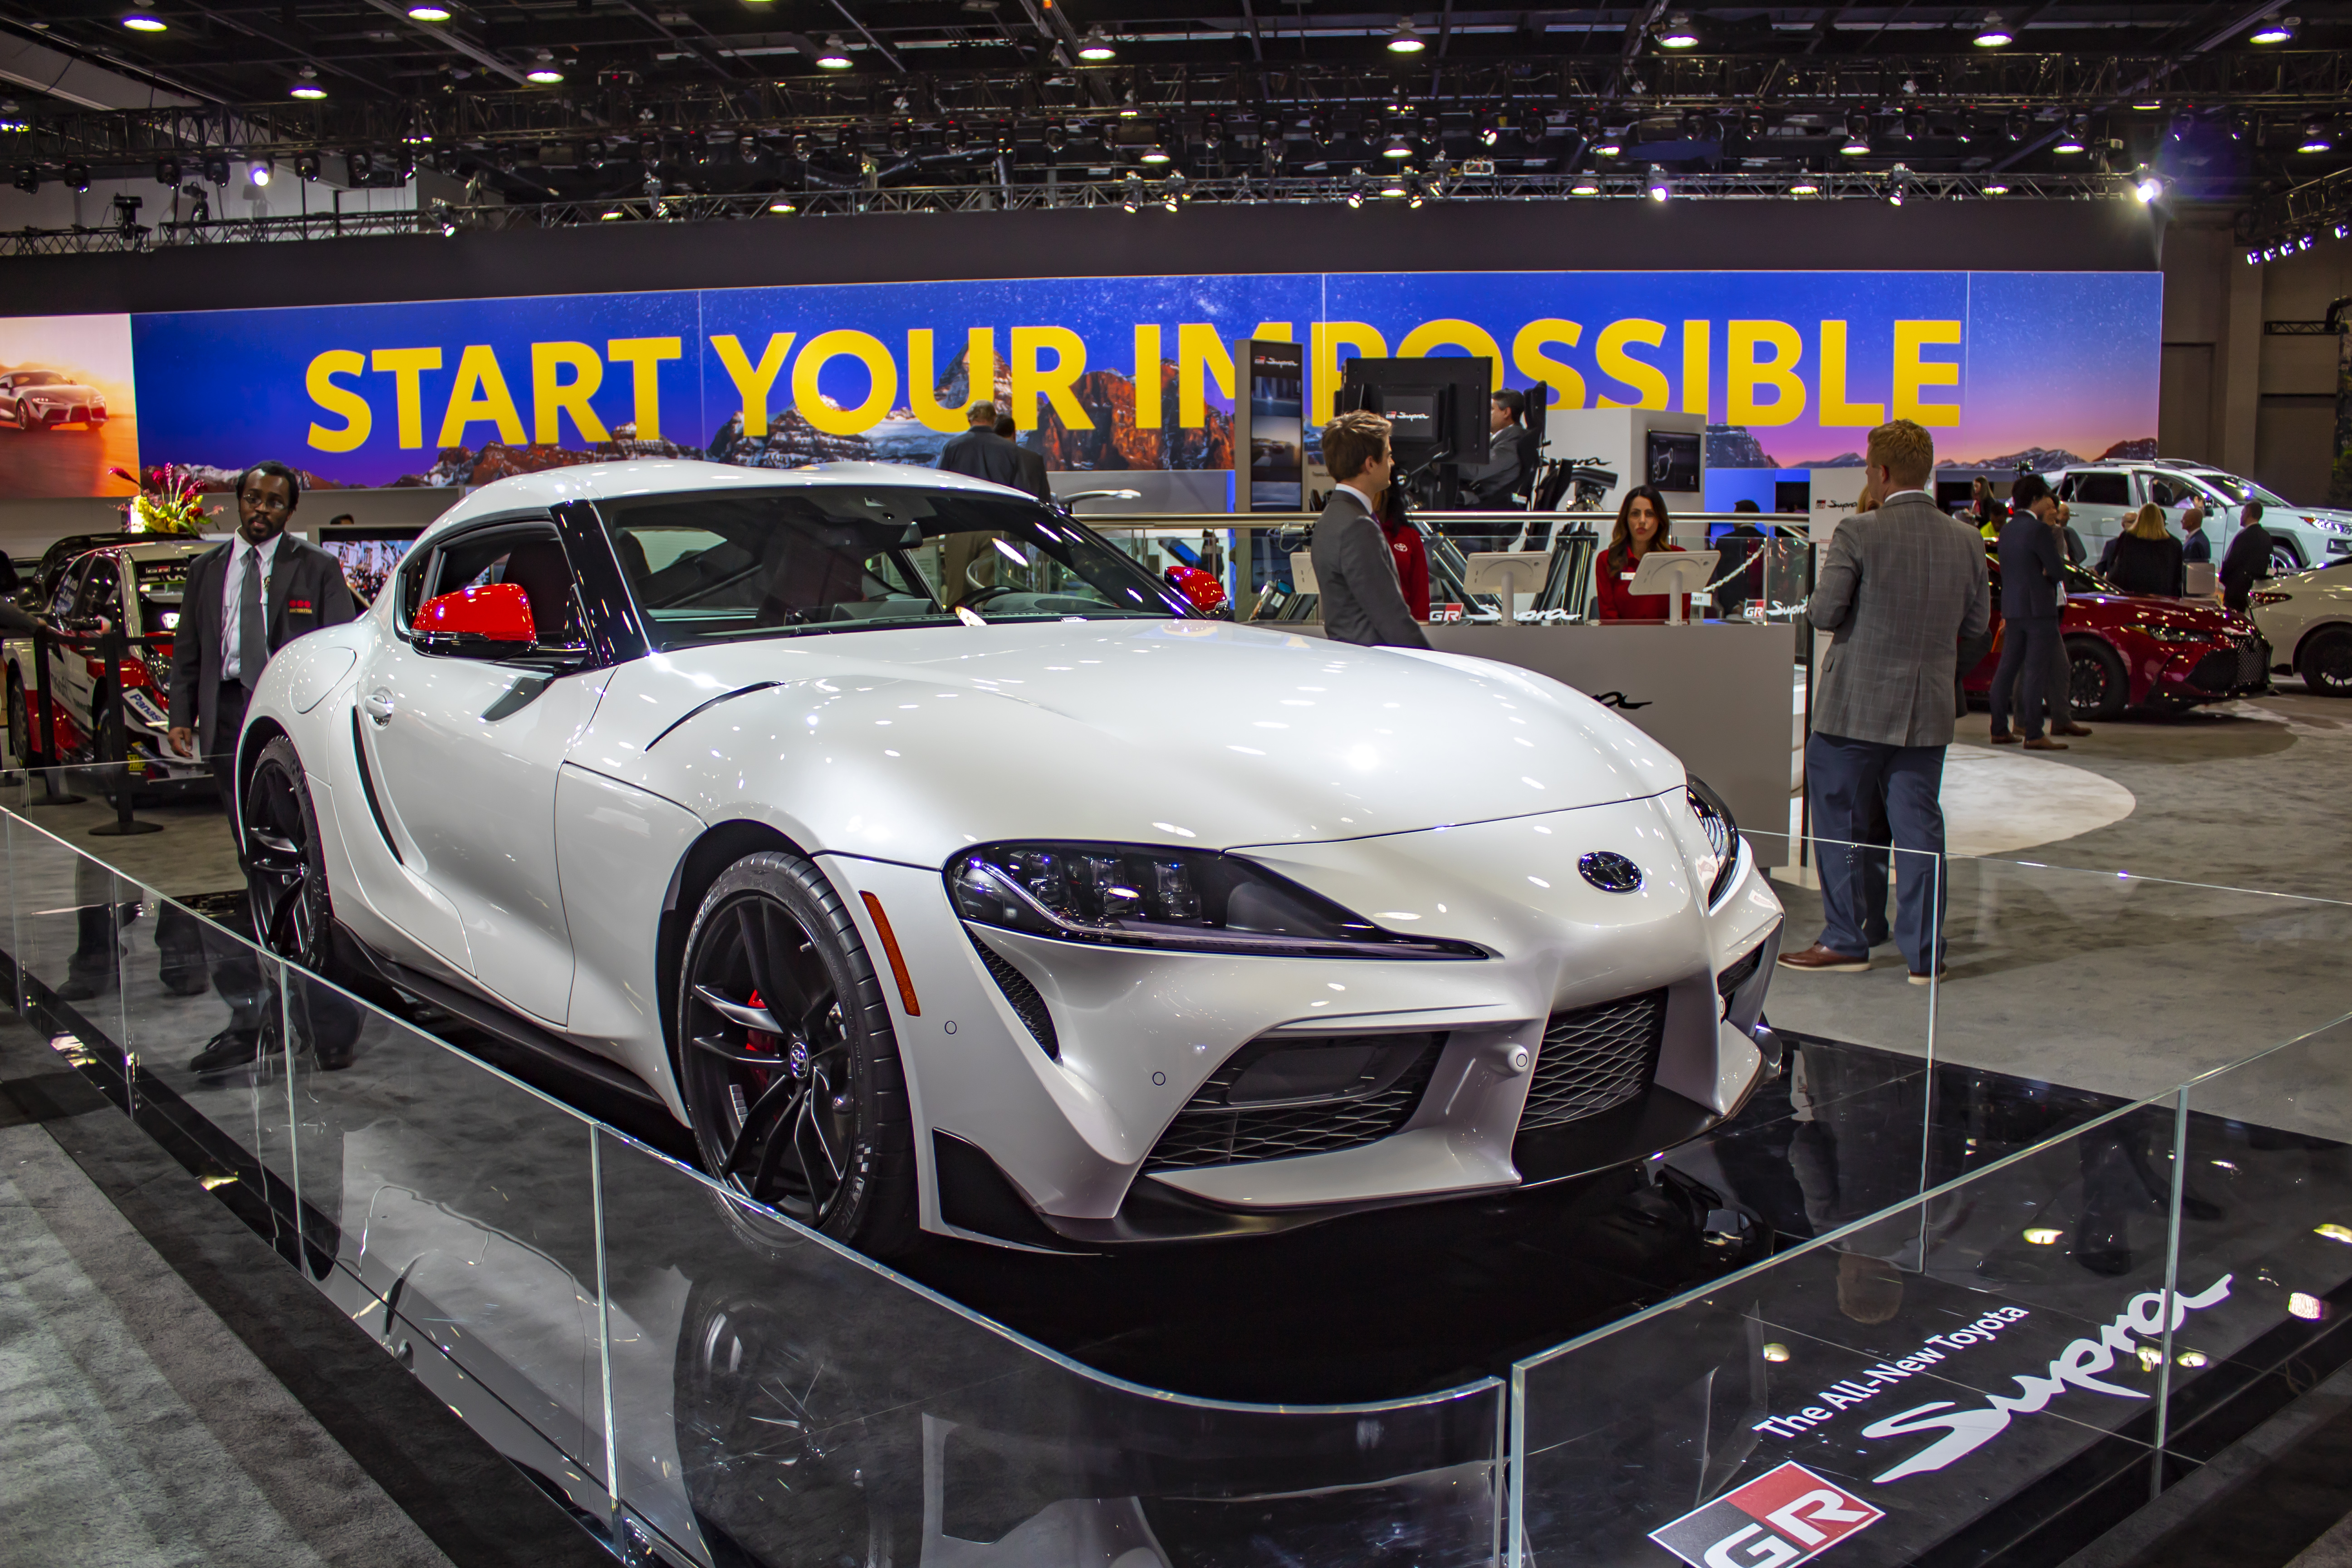 2019 toyota supra launch edition pictures  photos  wallpapers